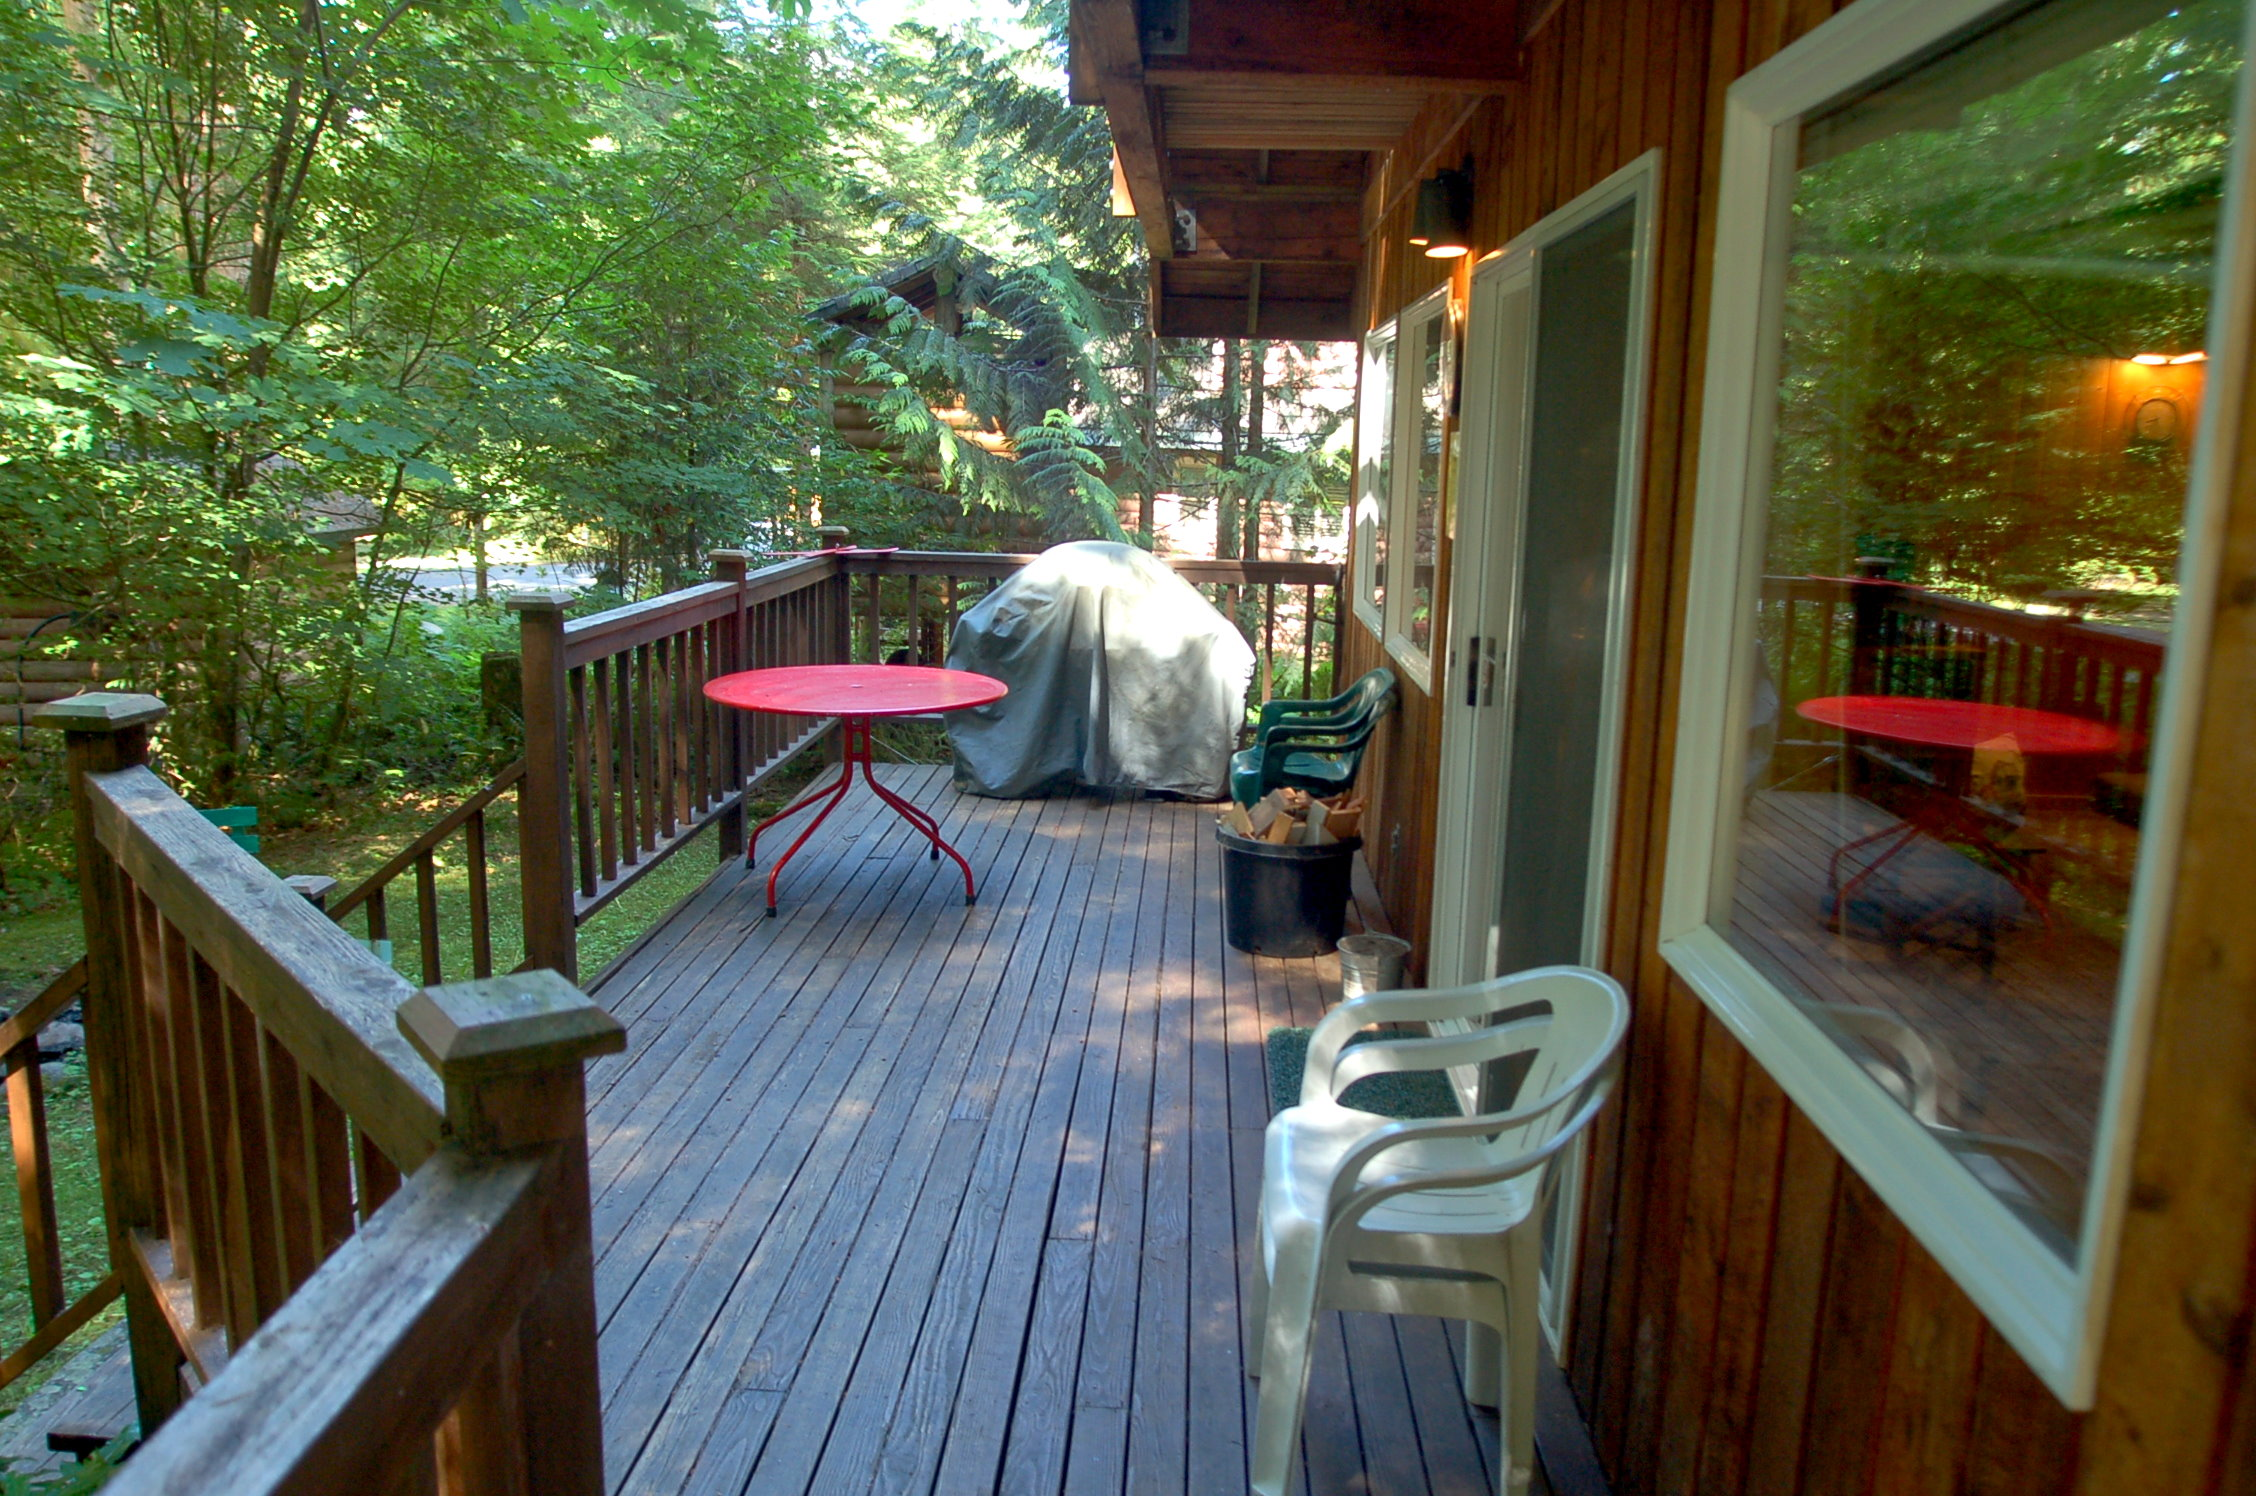 Enjoy the extension of the house on this great deck.